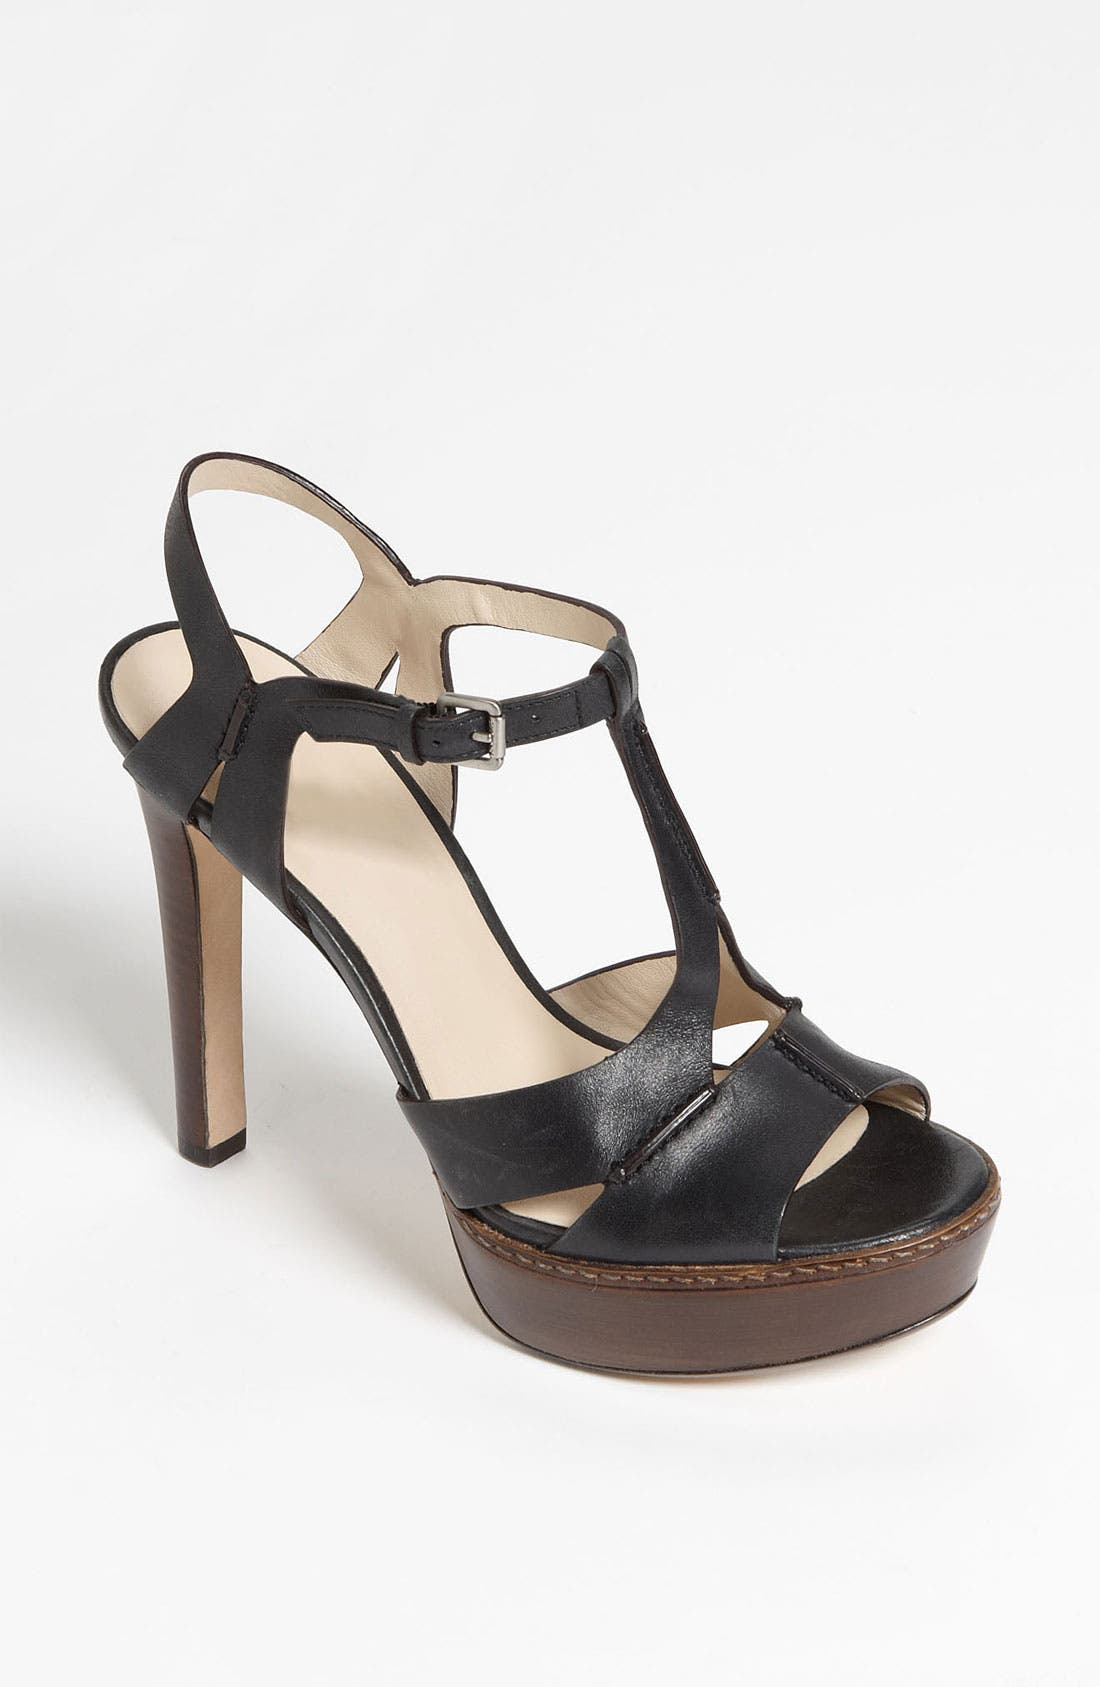 Alternate Image 1 Selected - KORS Michael Kors 'Brookton' Sandal